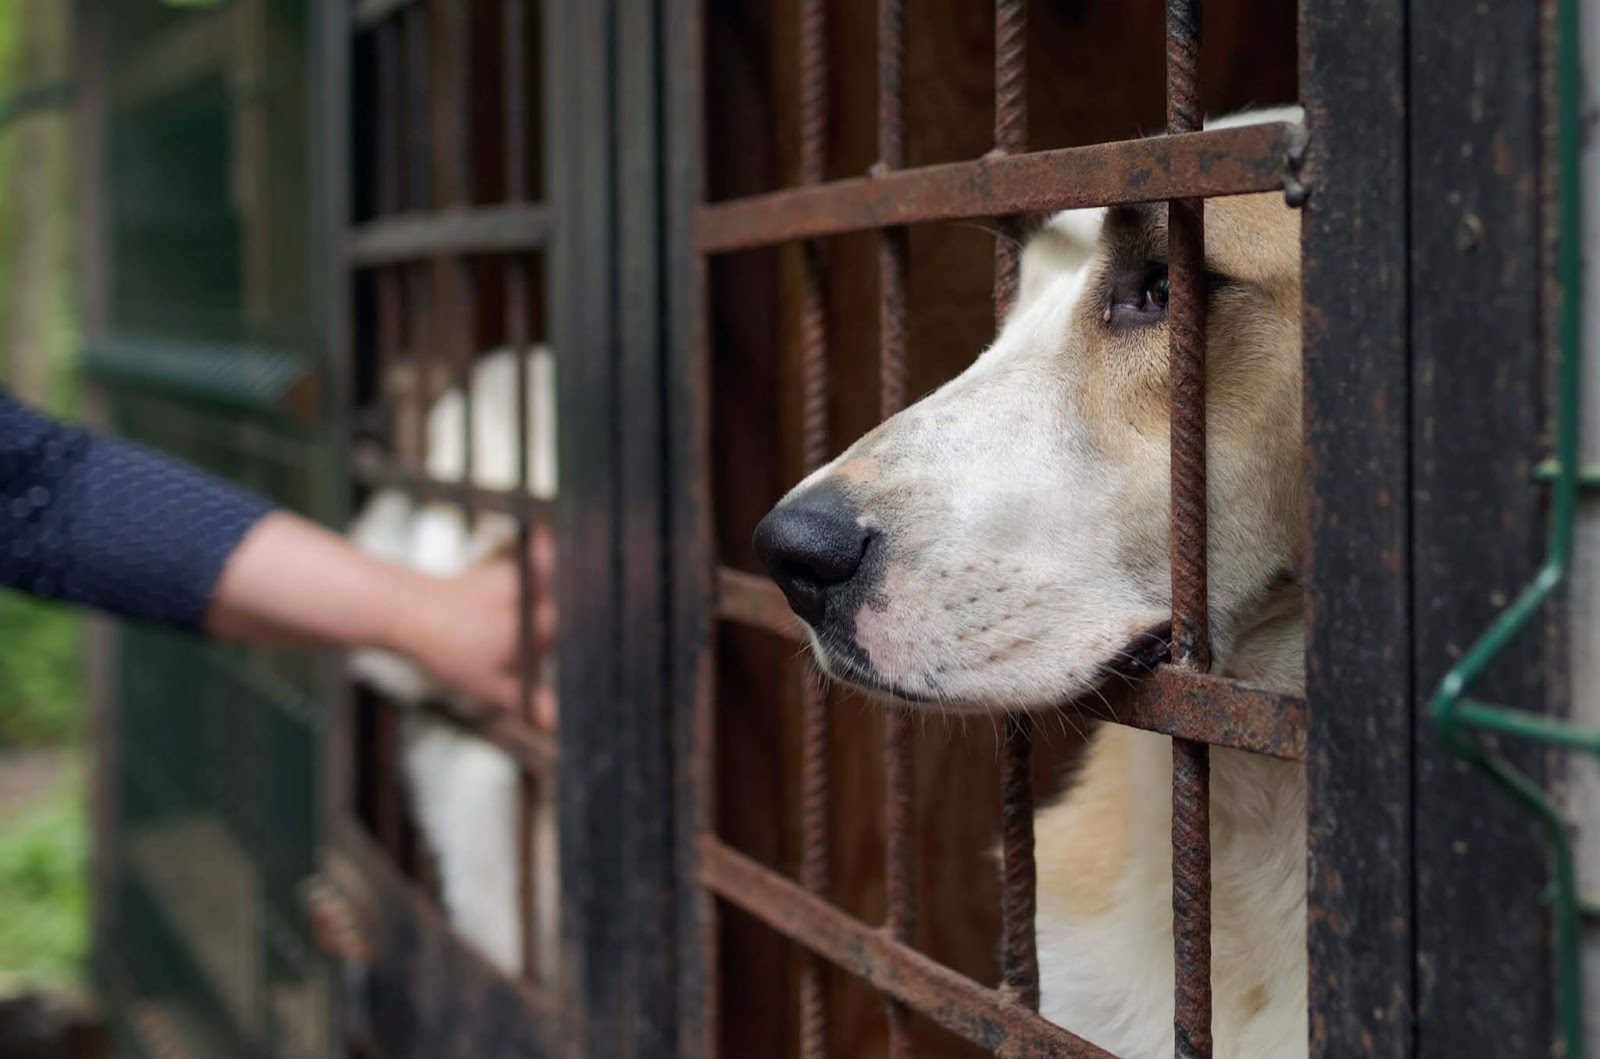 South Korean Court Finally Rules That Killing Dogs For Meat Is Illegal